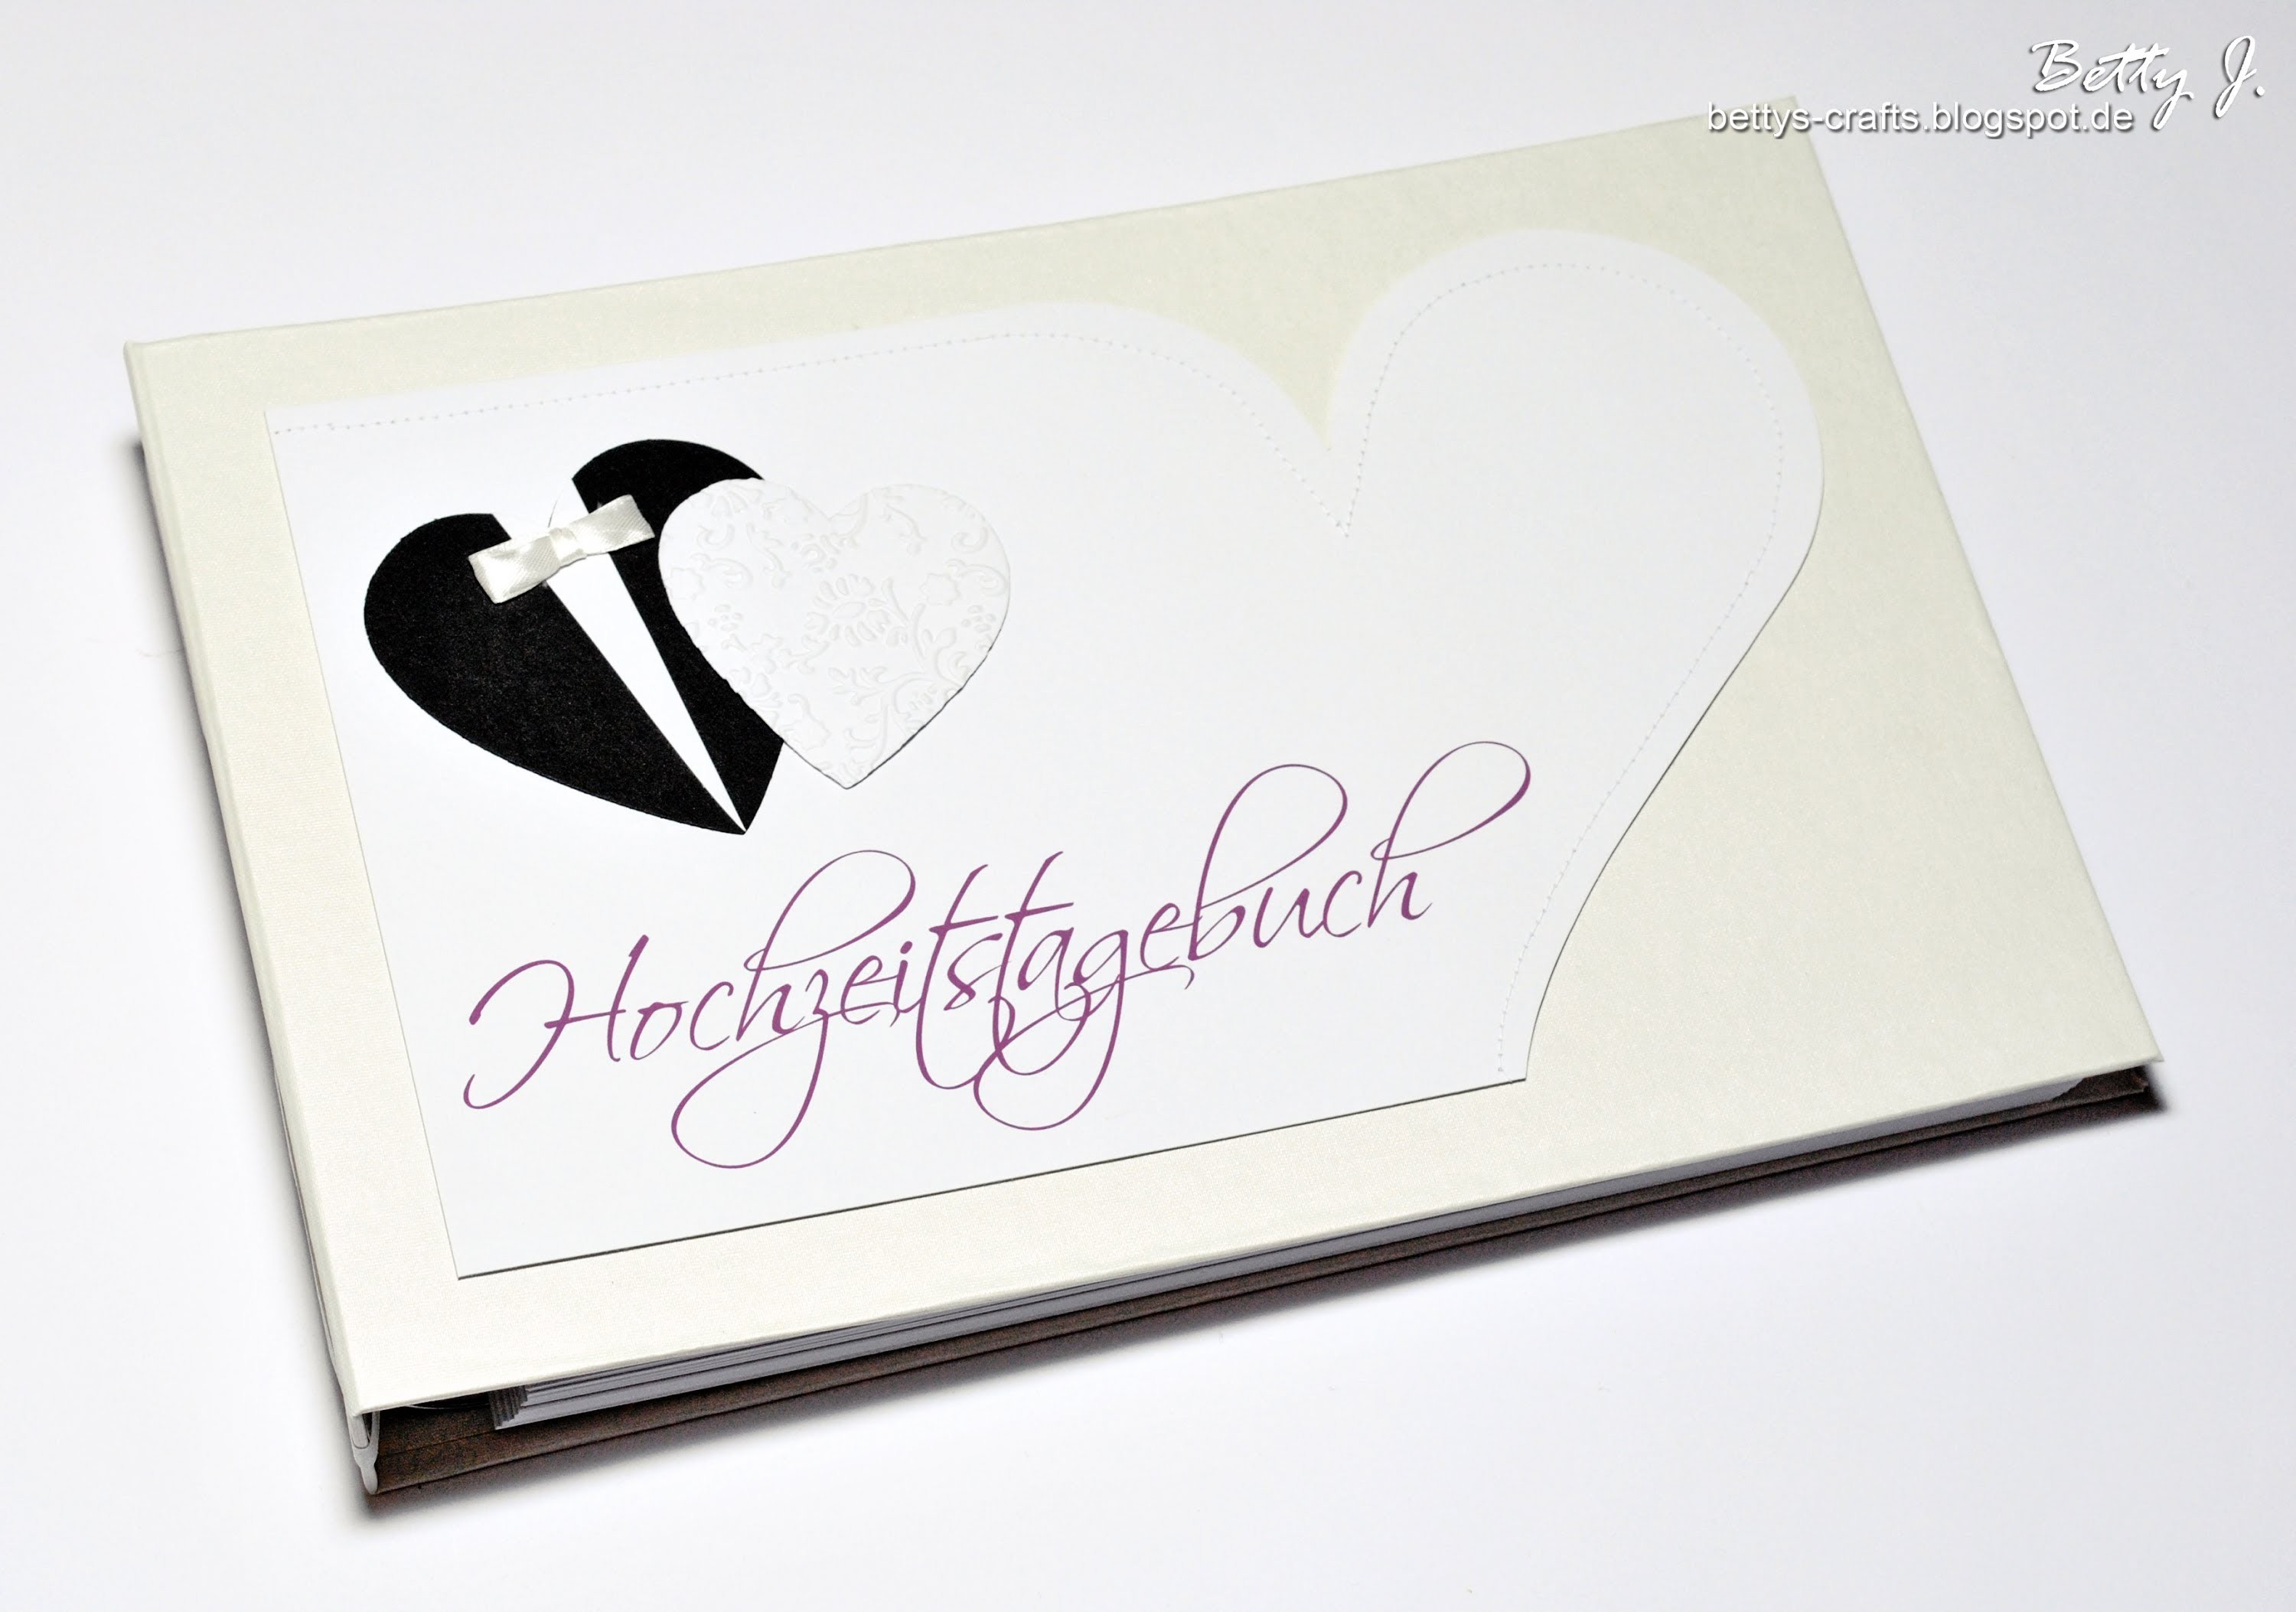 hochzeitstagebuch hochzeitsg stebuch wedding diary wedding journal guest book. Black Bedroom Furniture Sets. Home Design Ideas